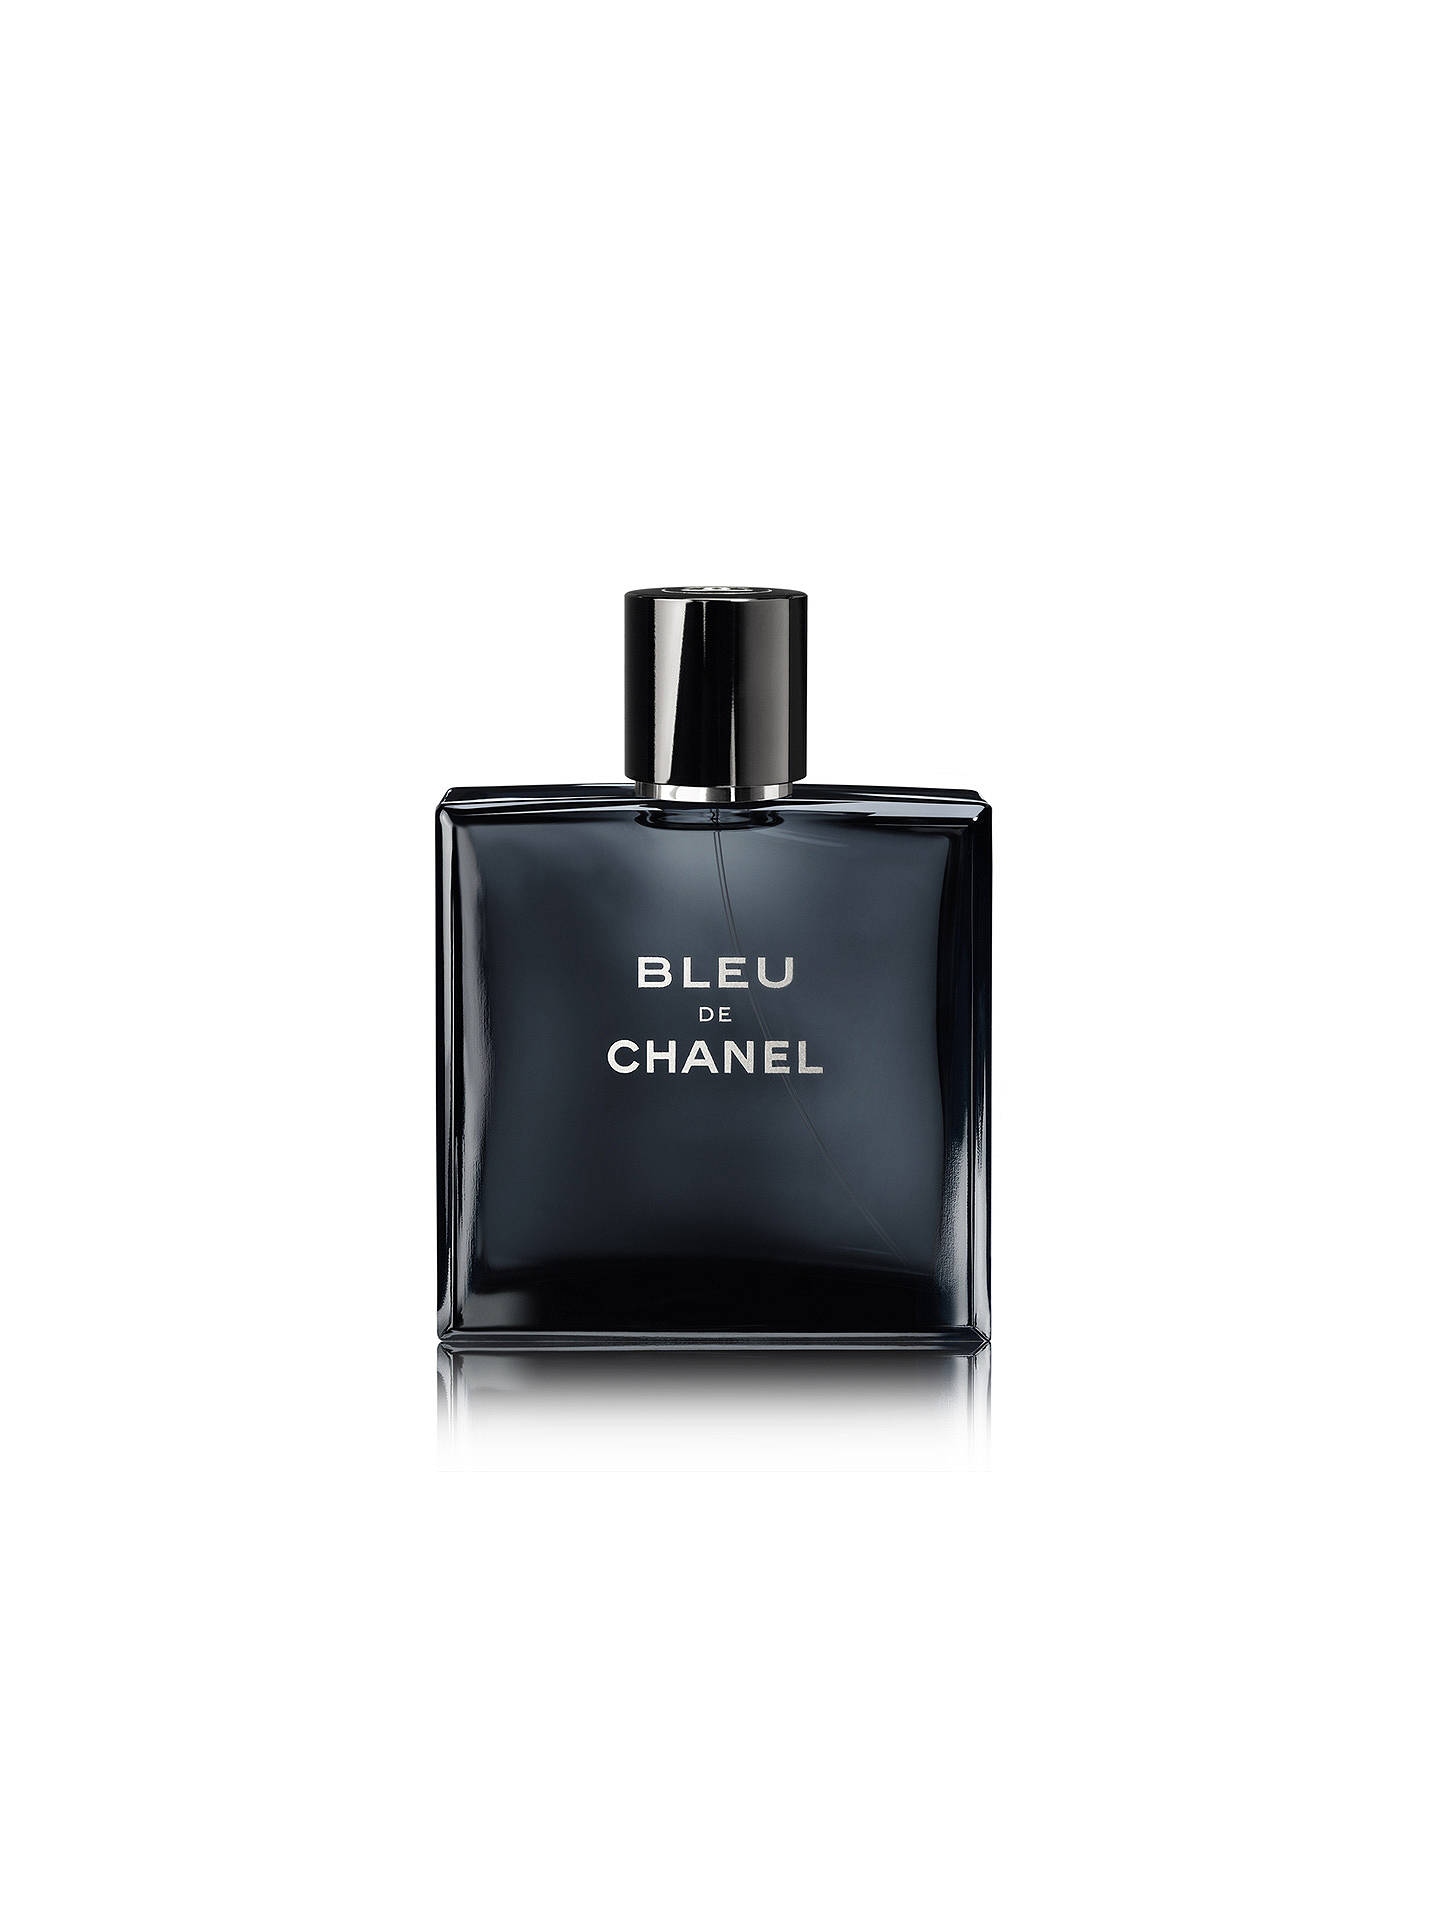 Chanel Bleu De Chanel Eau De Toilette Spray At John Lewis Partners